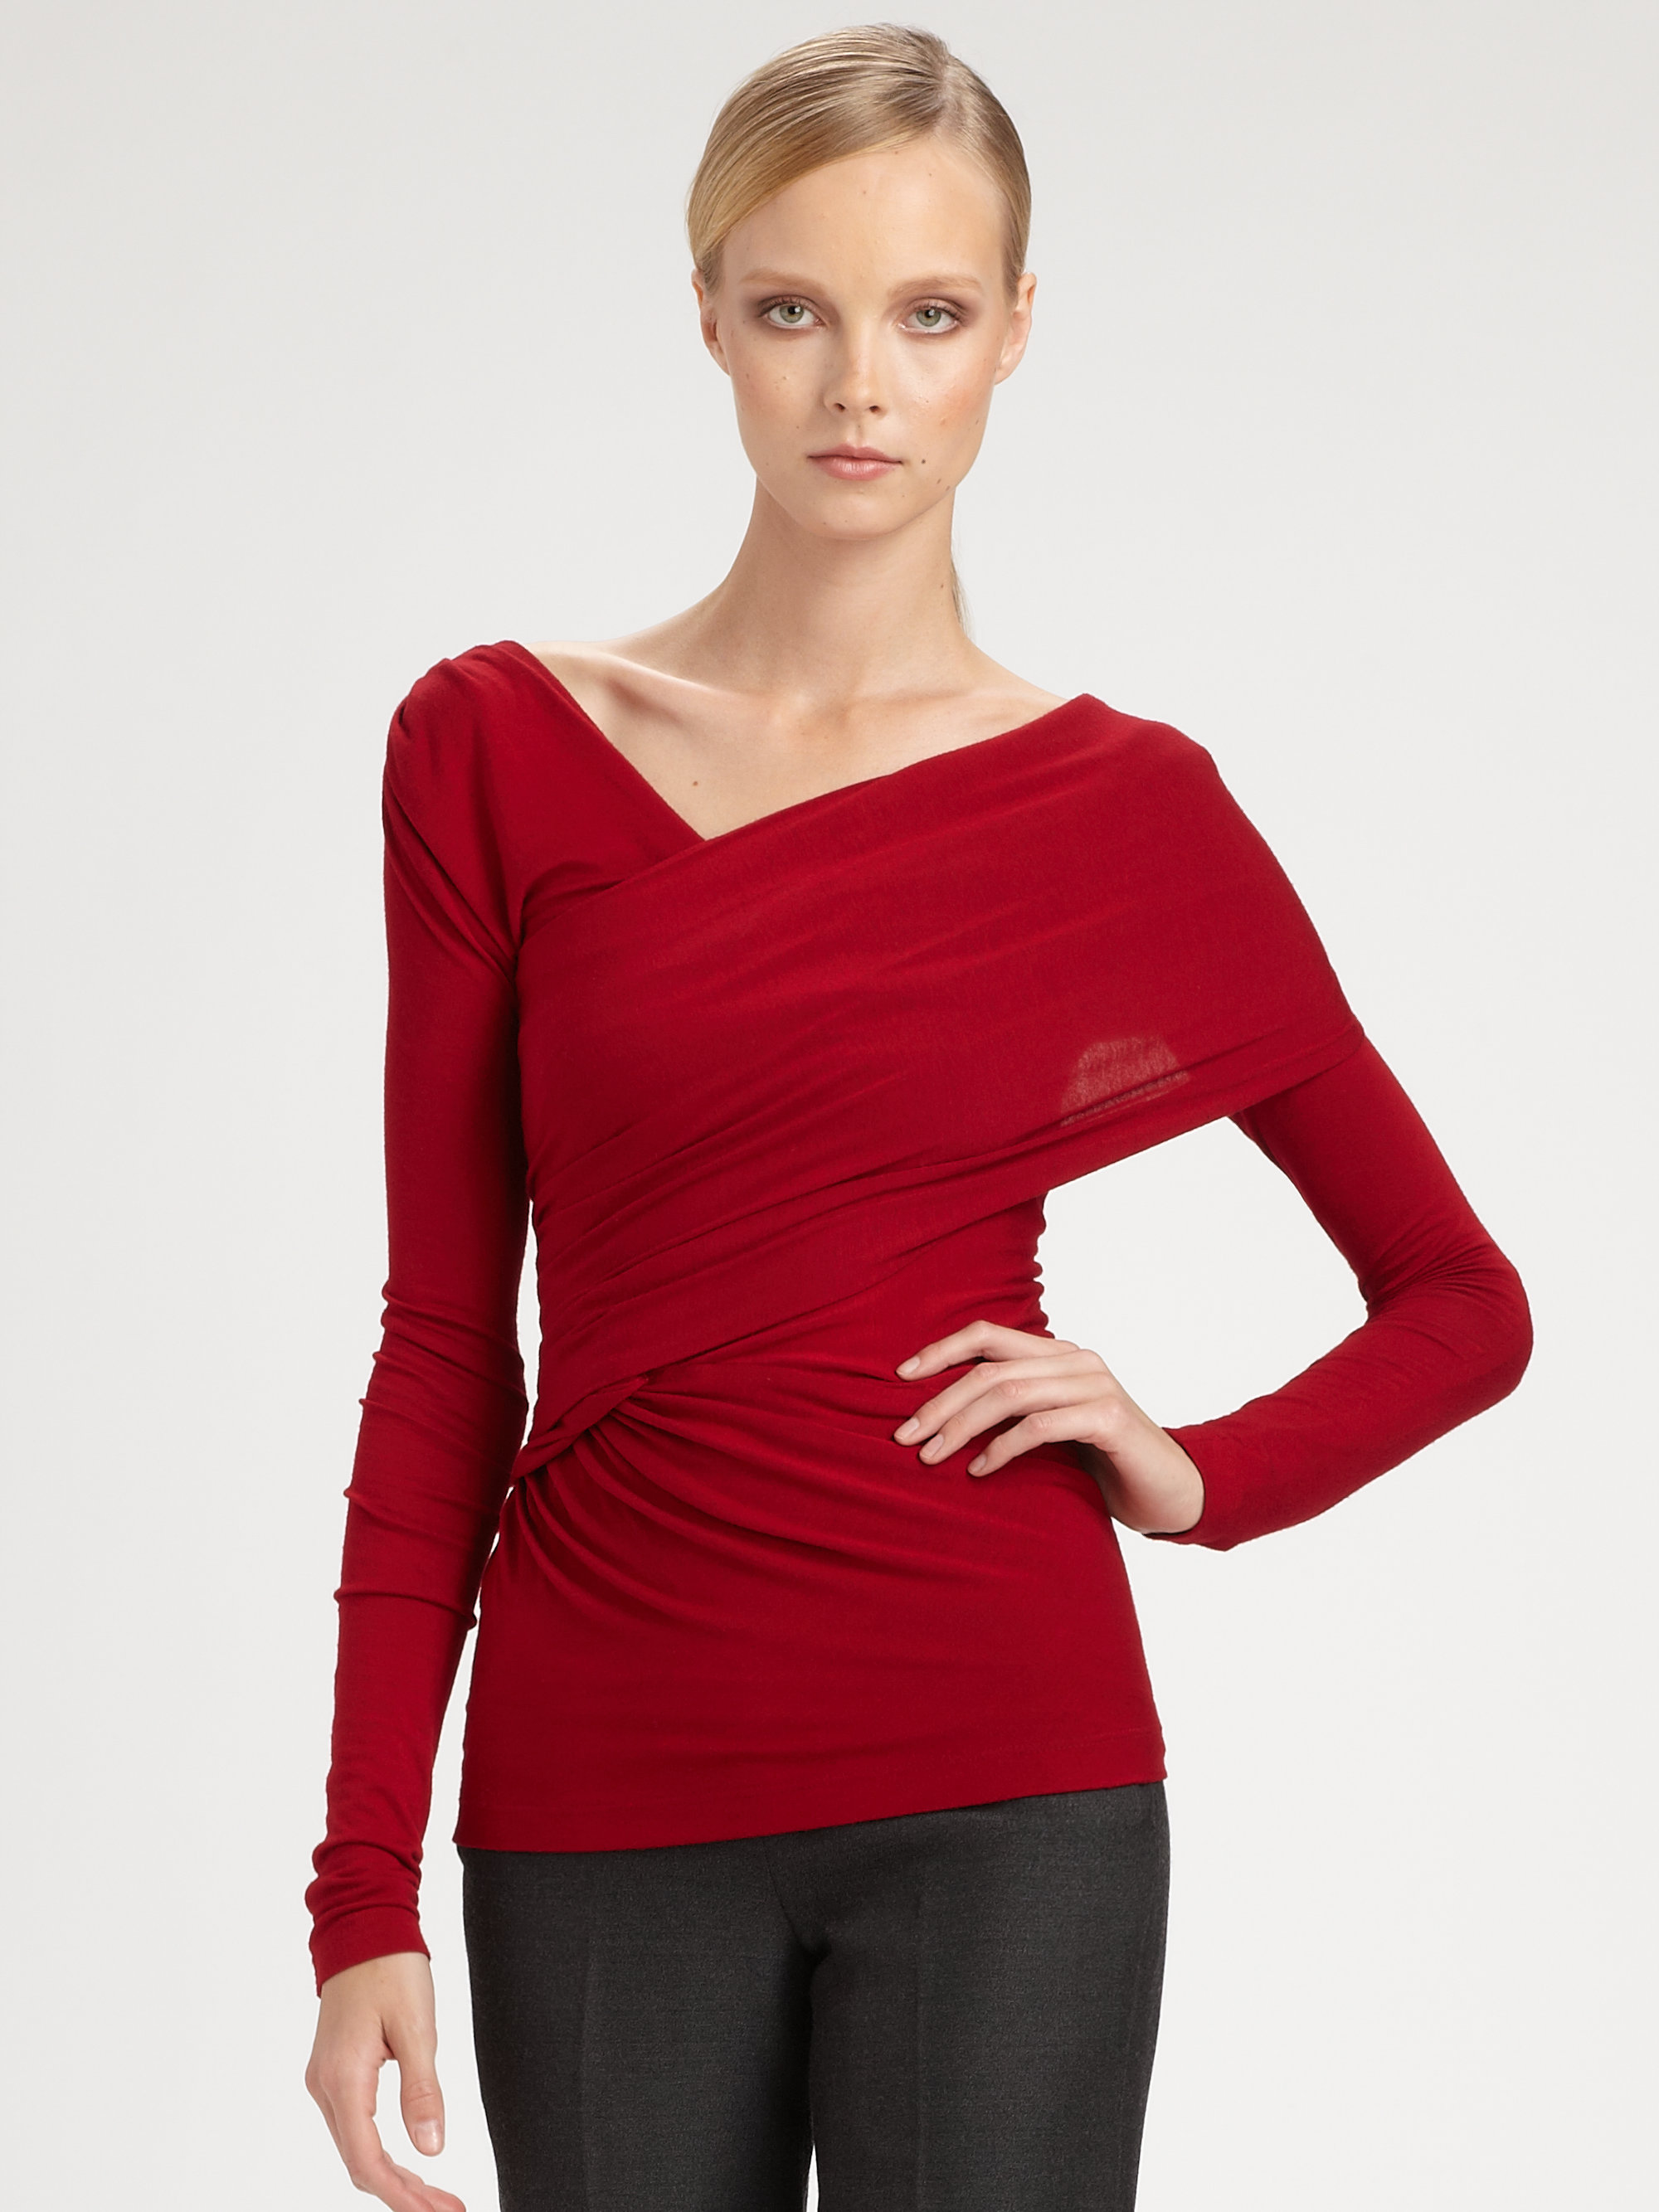 Donna karan new york asymmetrical top in red scarlet lyst for Donna karen new york